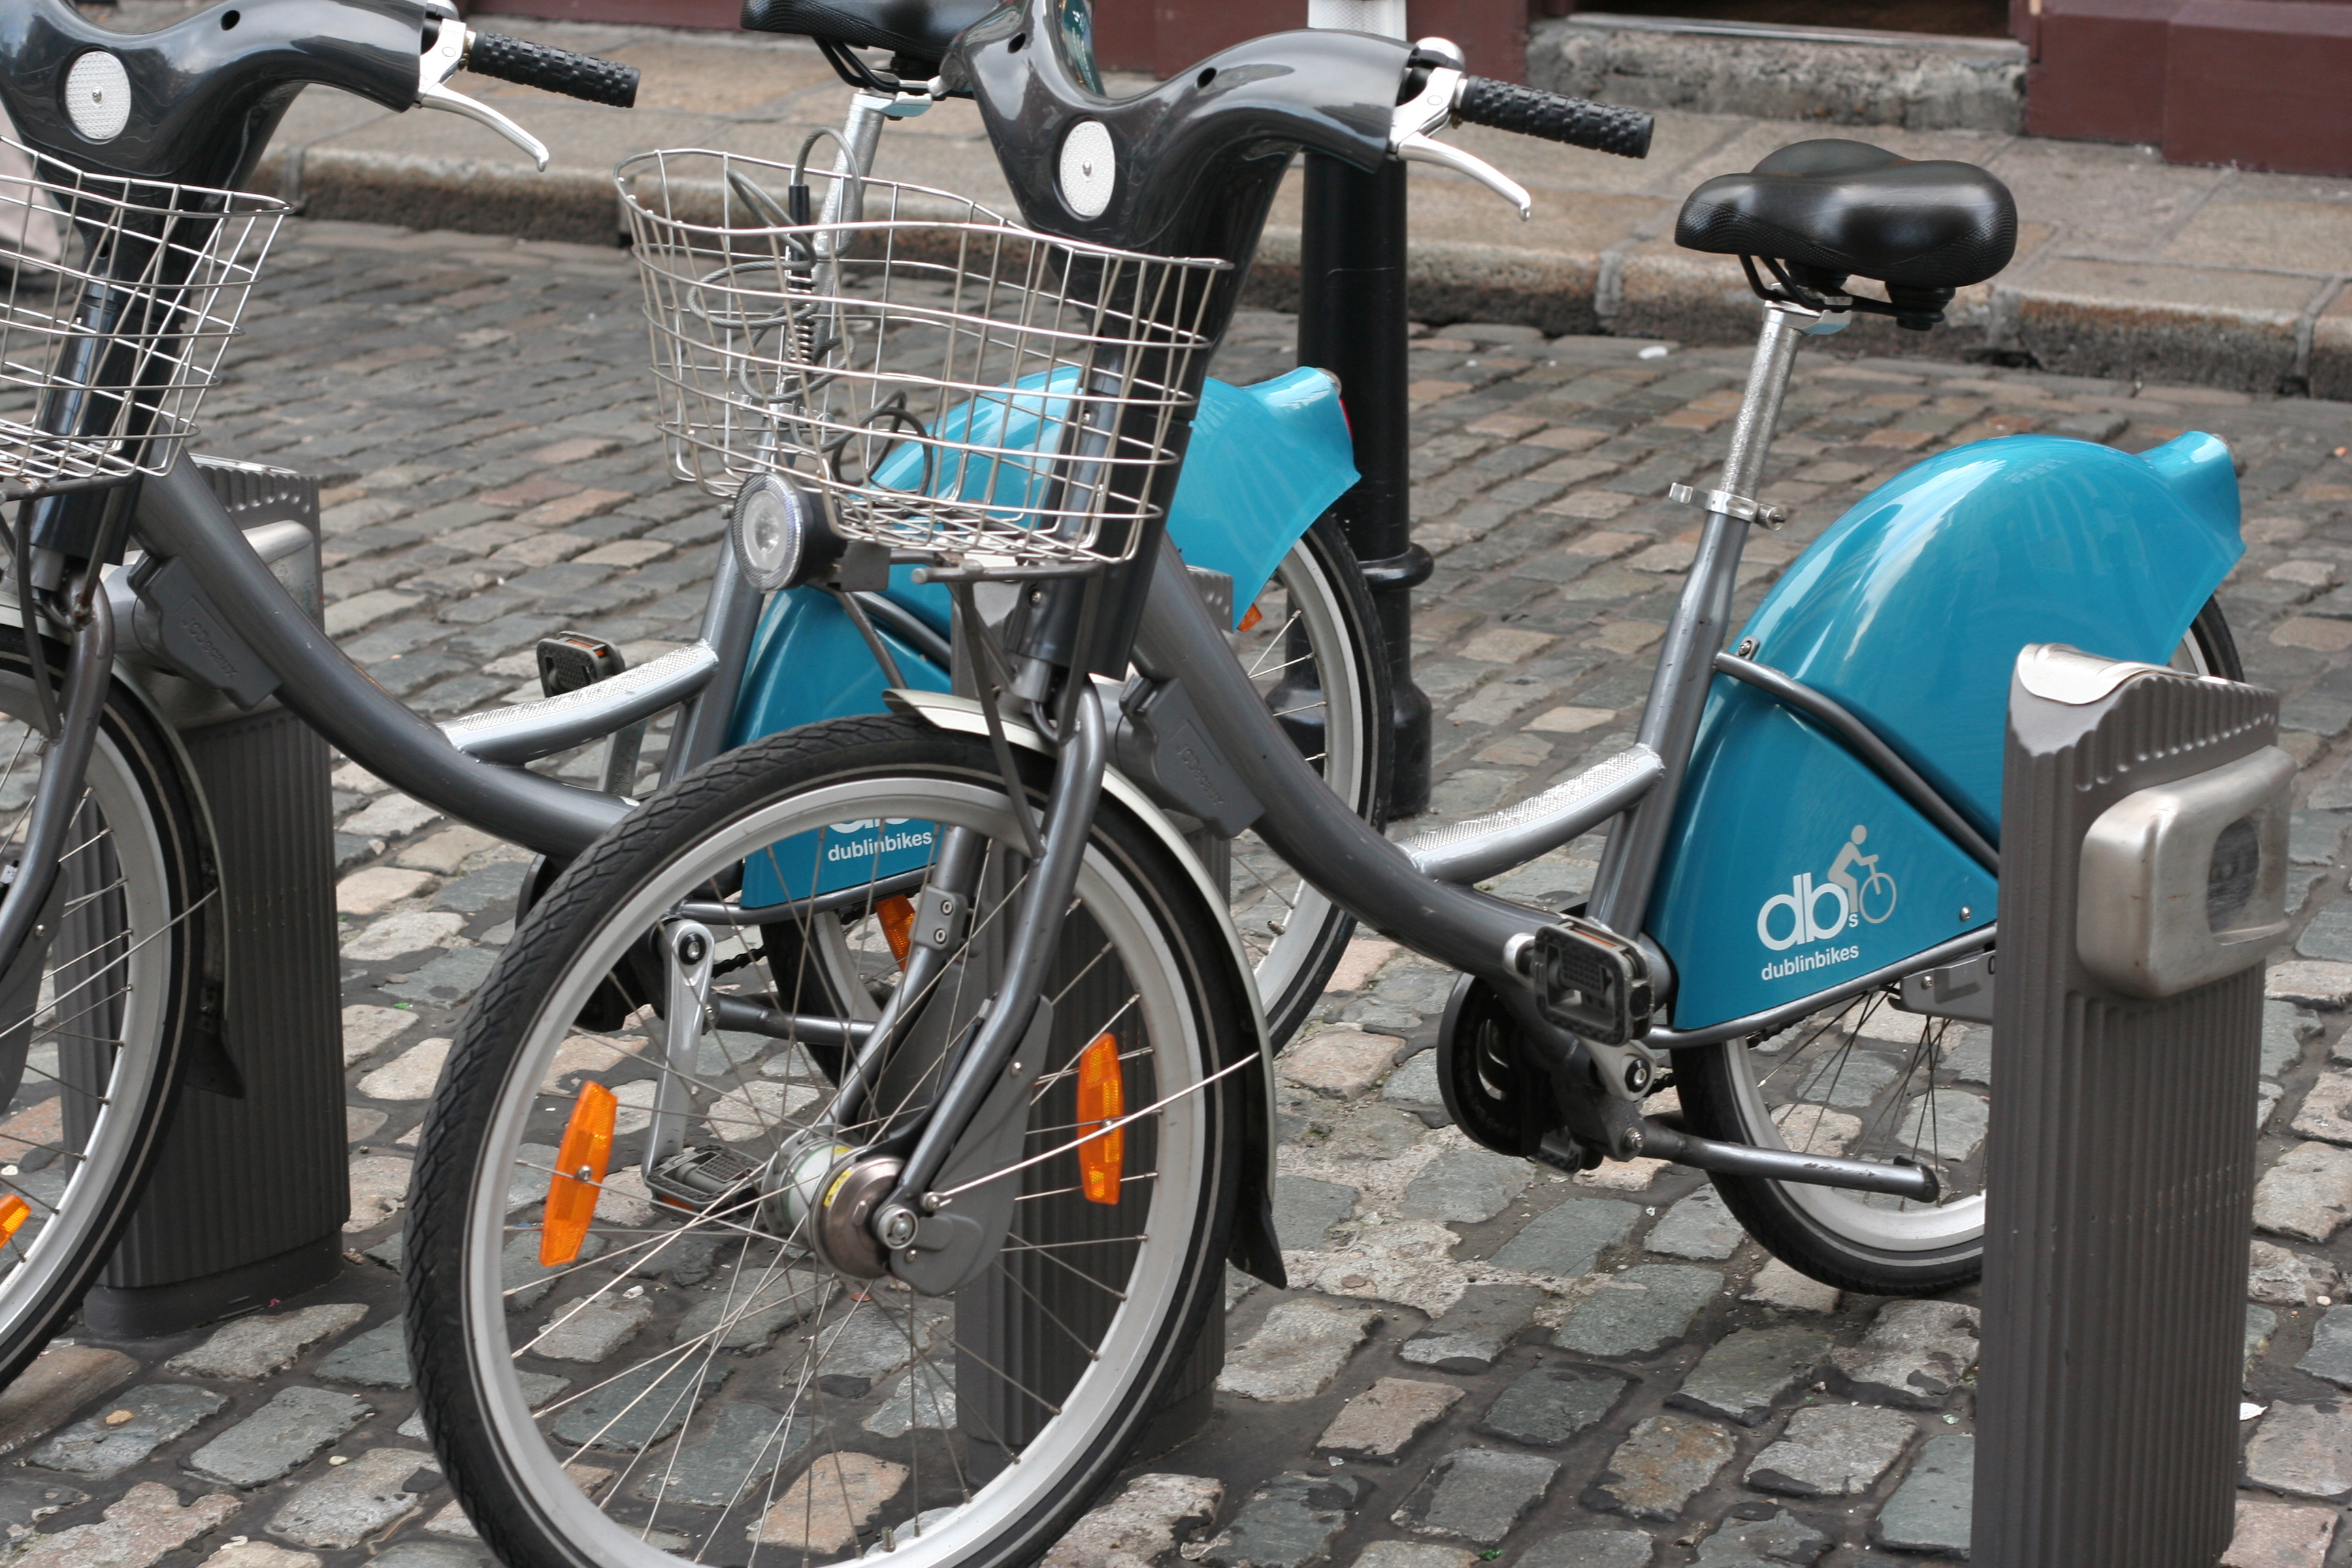 Stationless bike-hire scheme to operate in dublin city.